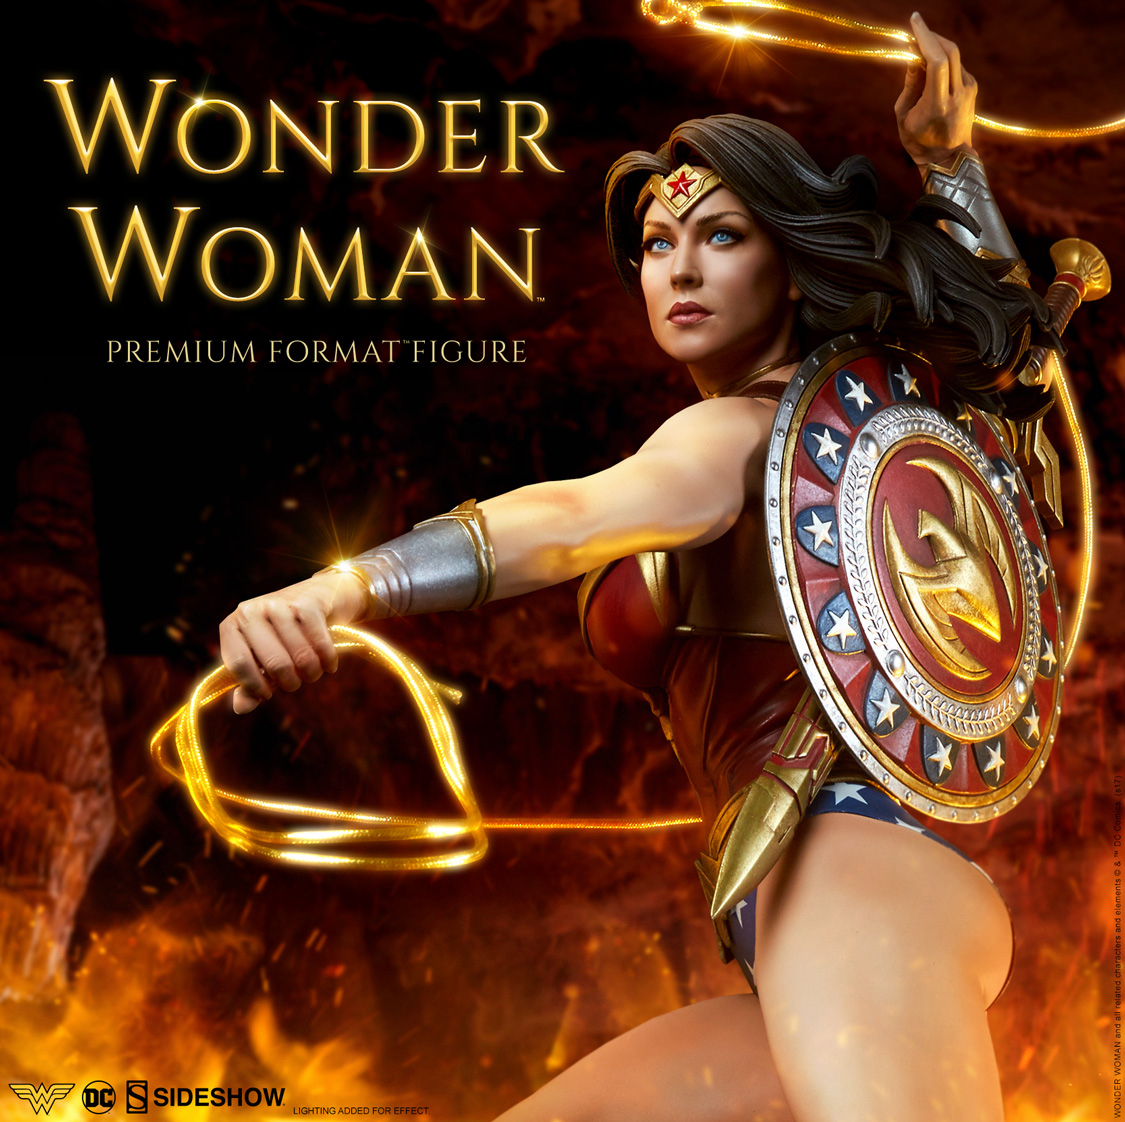 wonder-woman-sideshow-premium-format-figure-preview